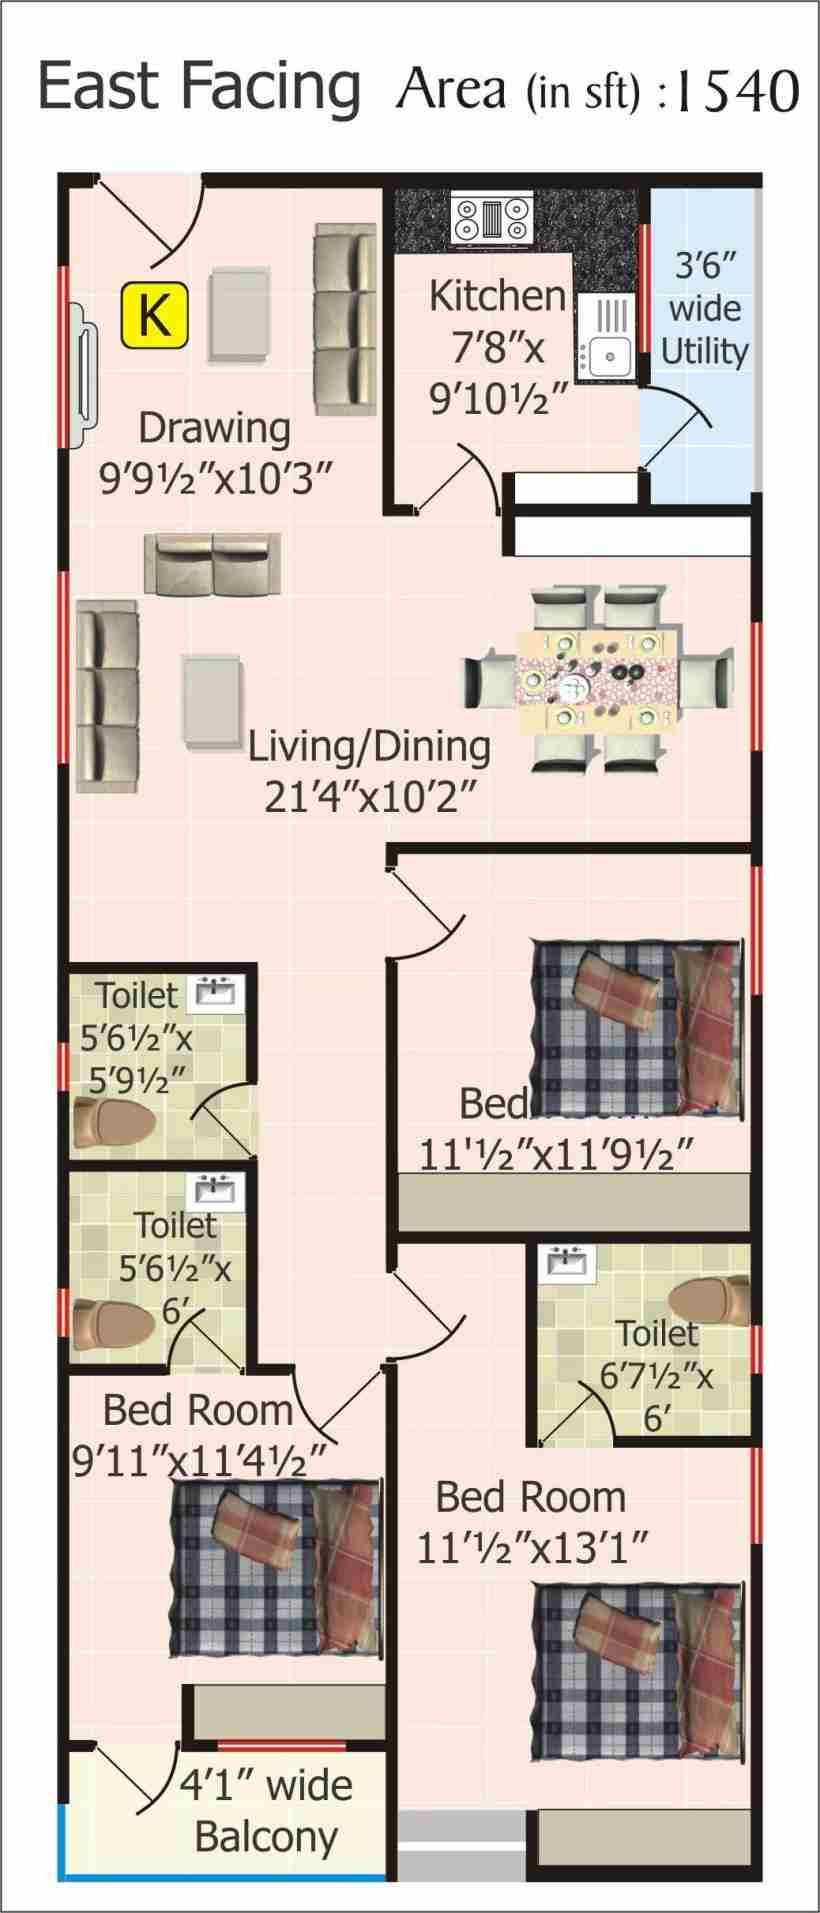 Home Garden Image By Kayla Rosalia 3d House Plans Indian